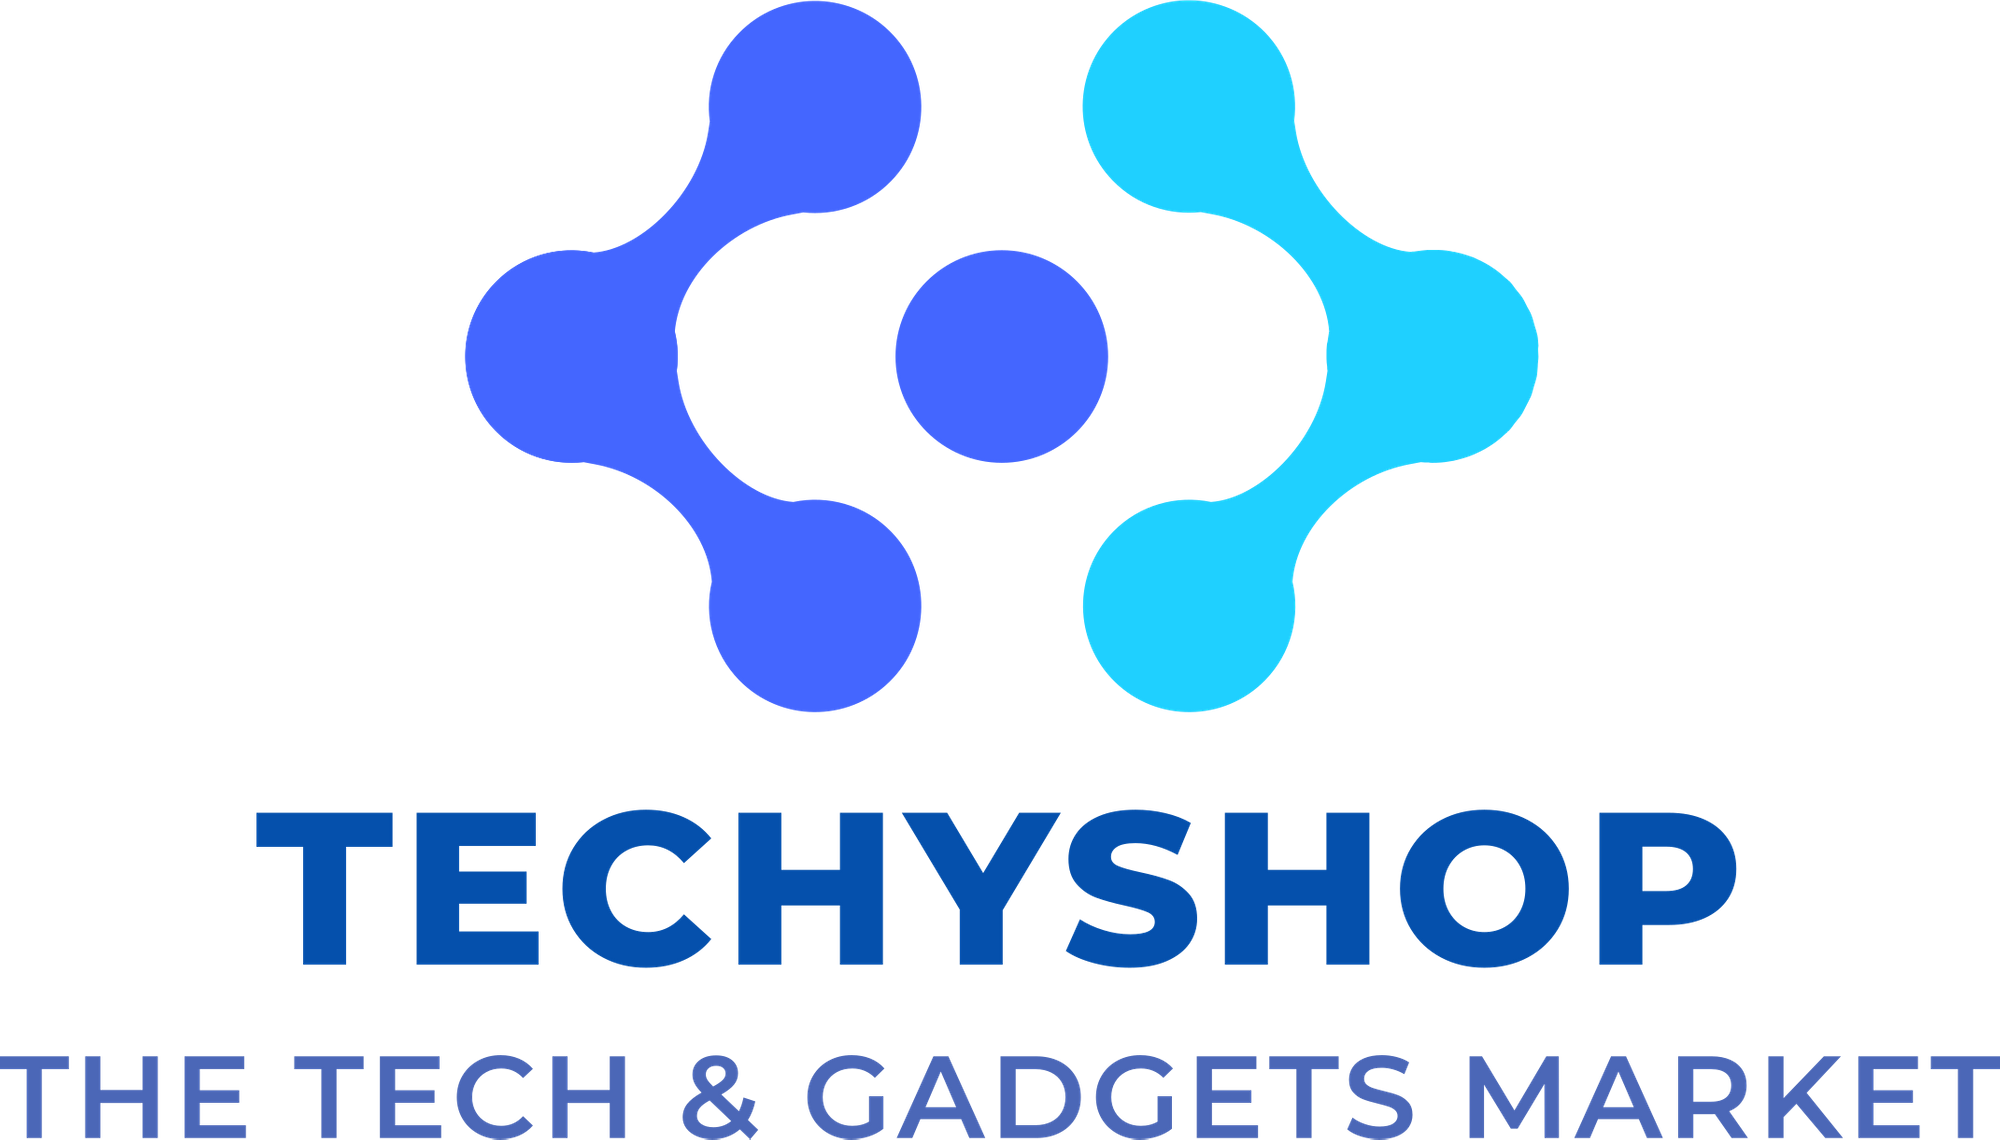 Techy Shop